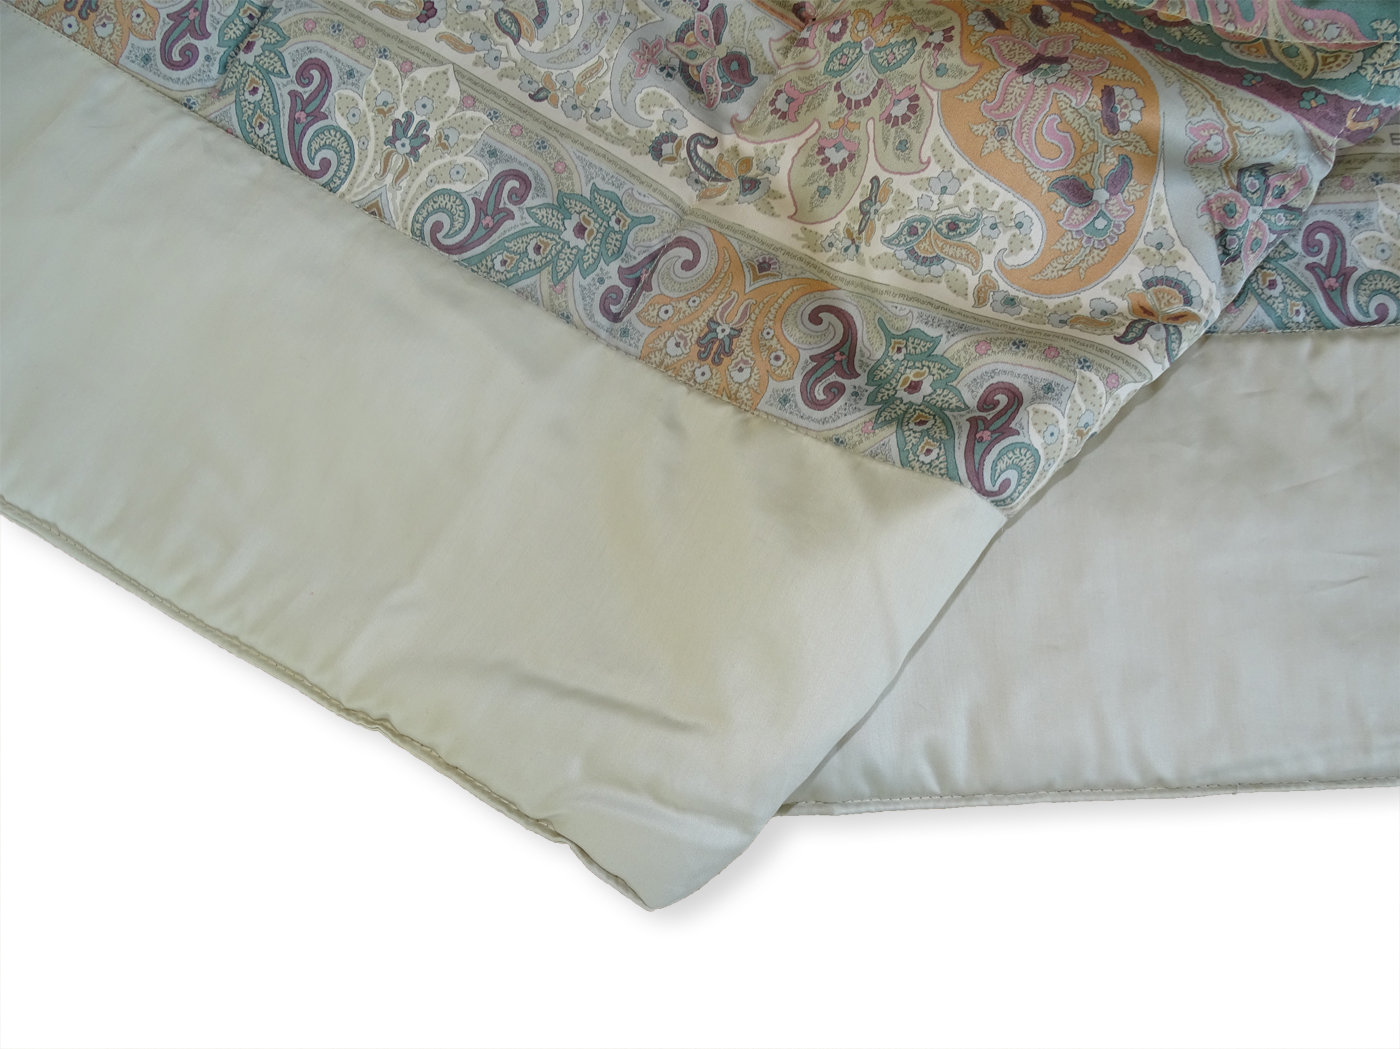 Gesteppte satin tagesdecke etro paisley bei bedandroom for Tagesdecke paisley